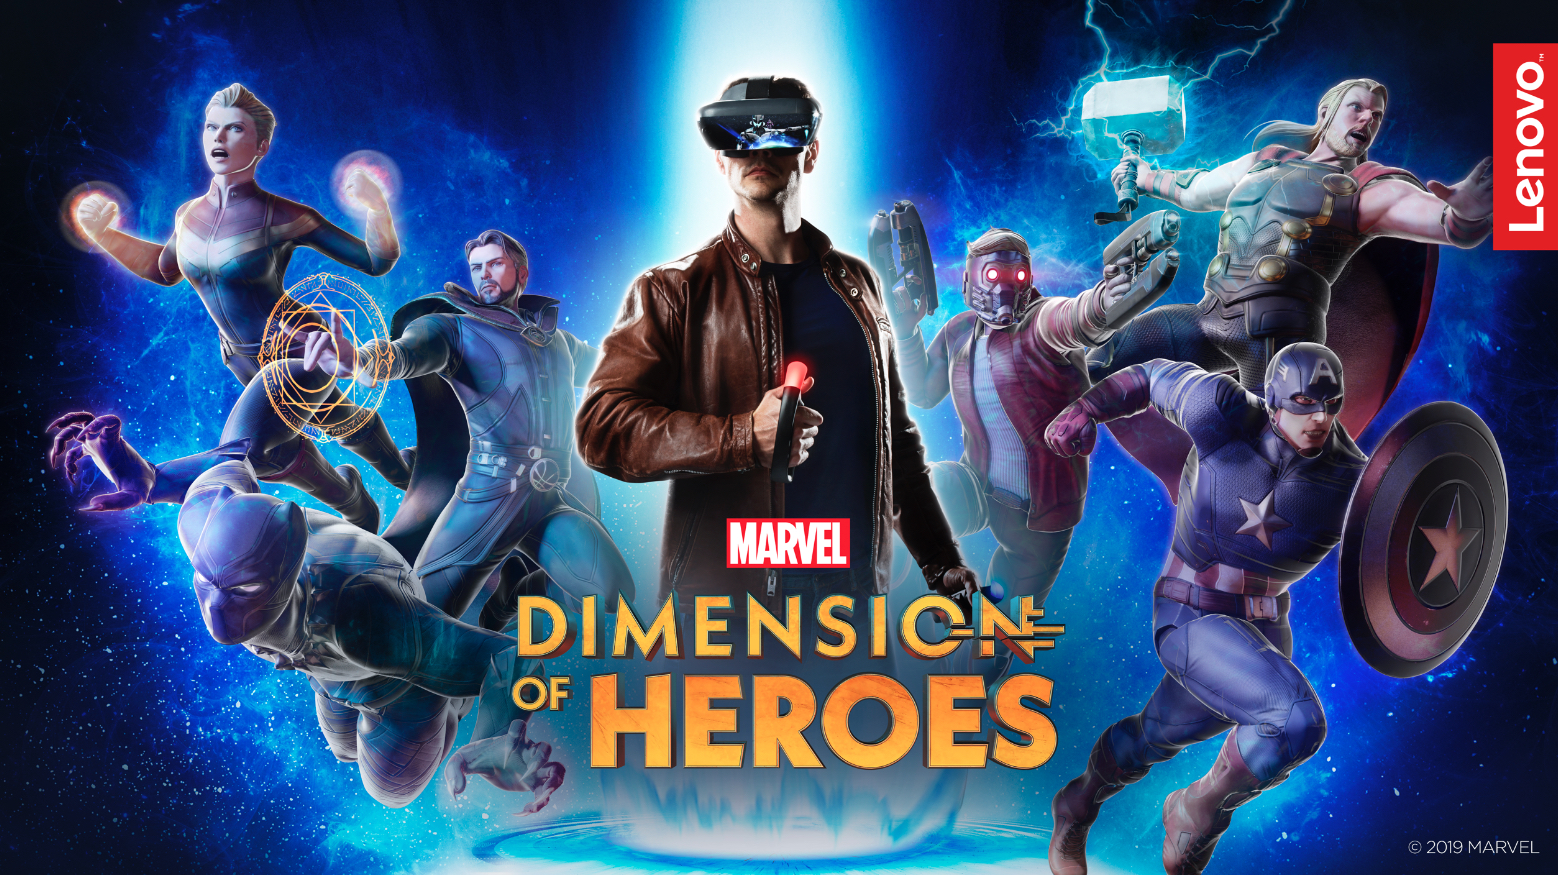 Upcoming AR Game 'MARVEL Dimension of Heroes' Is Nothing New, But A Heroic Amount Of Fun And Heart